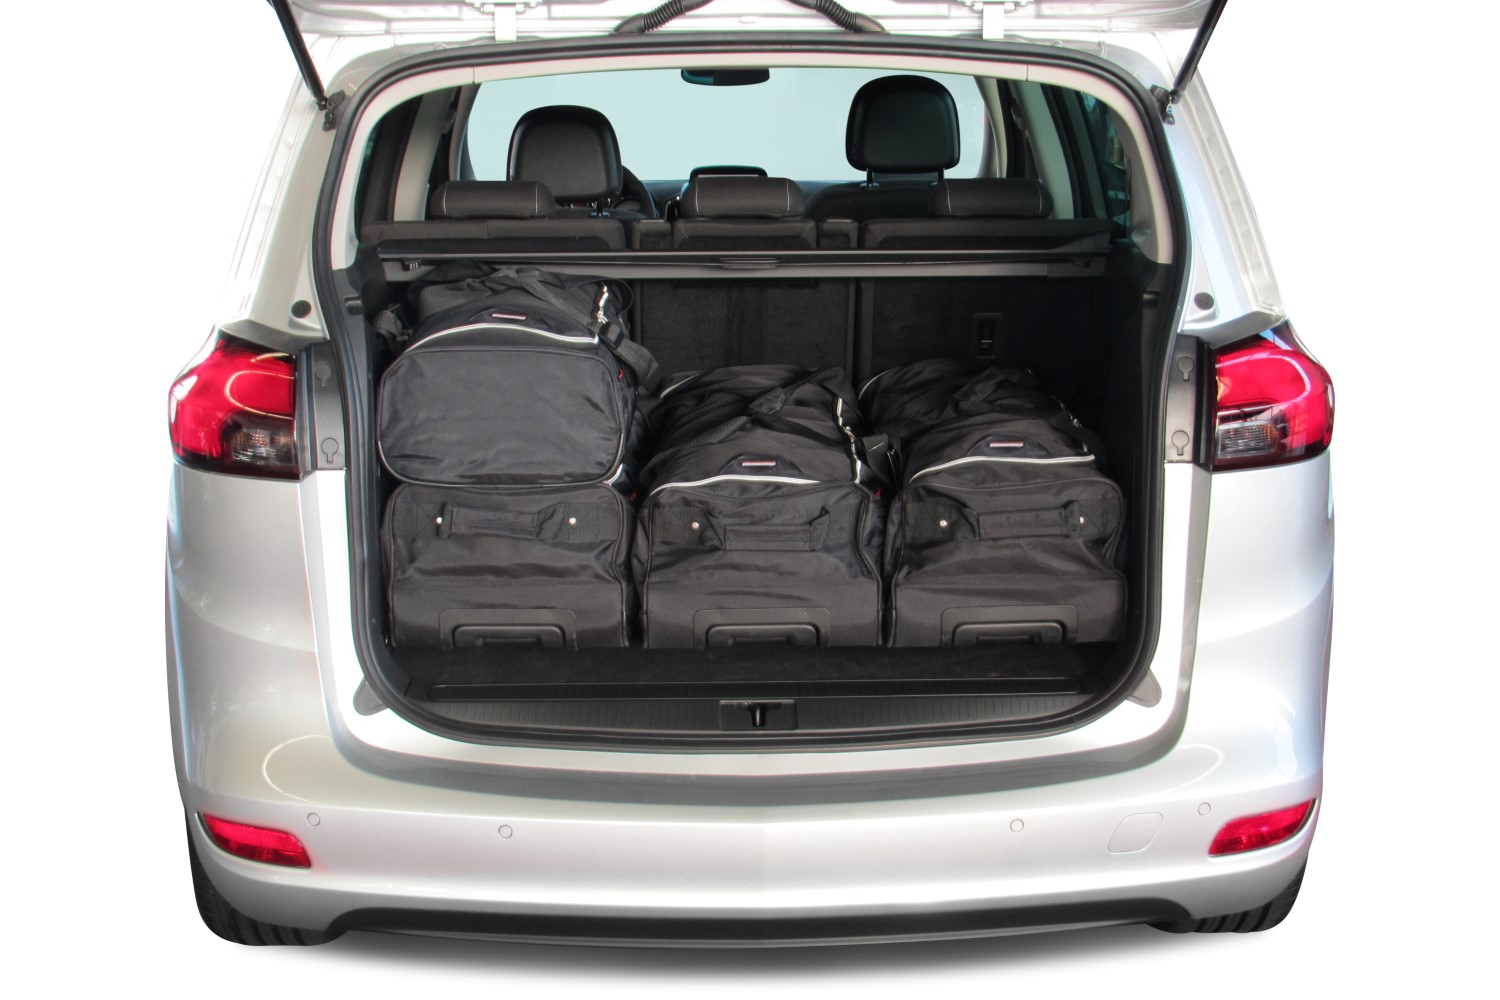 zafira opel zafira tourer c 2011 present car bags travel bags. Black Bedroom Furniture Sets. Home Design Ideas